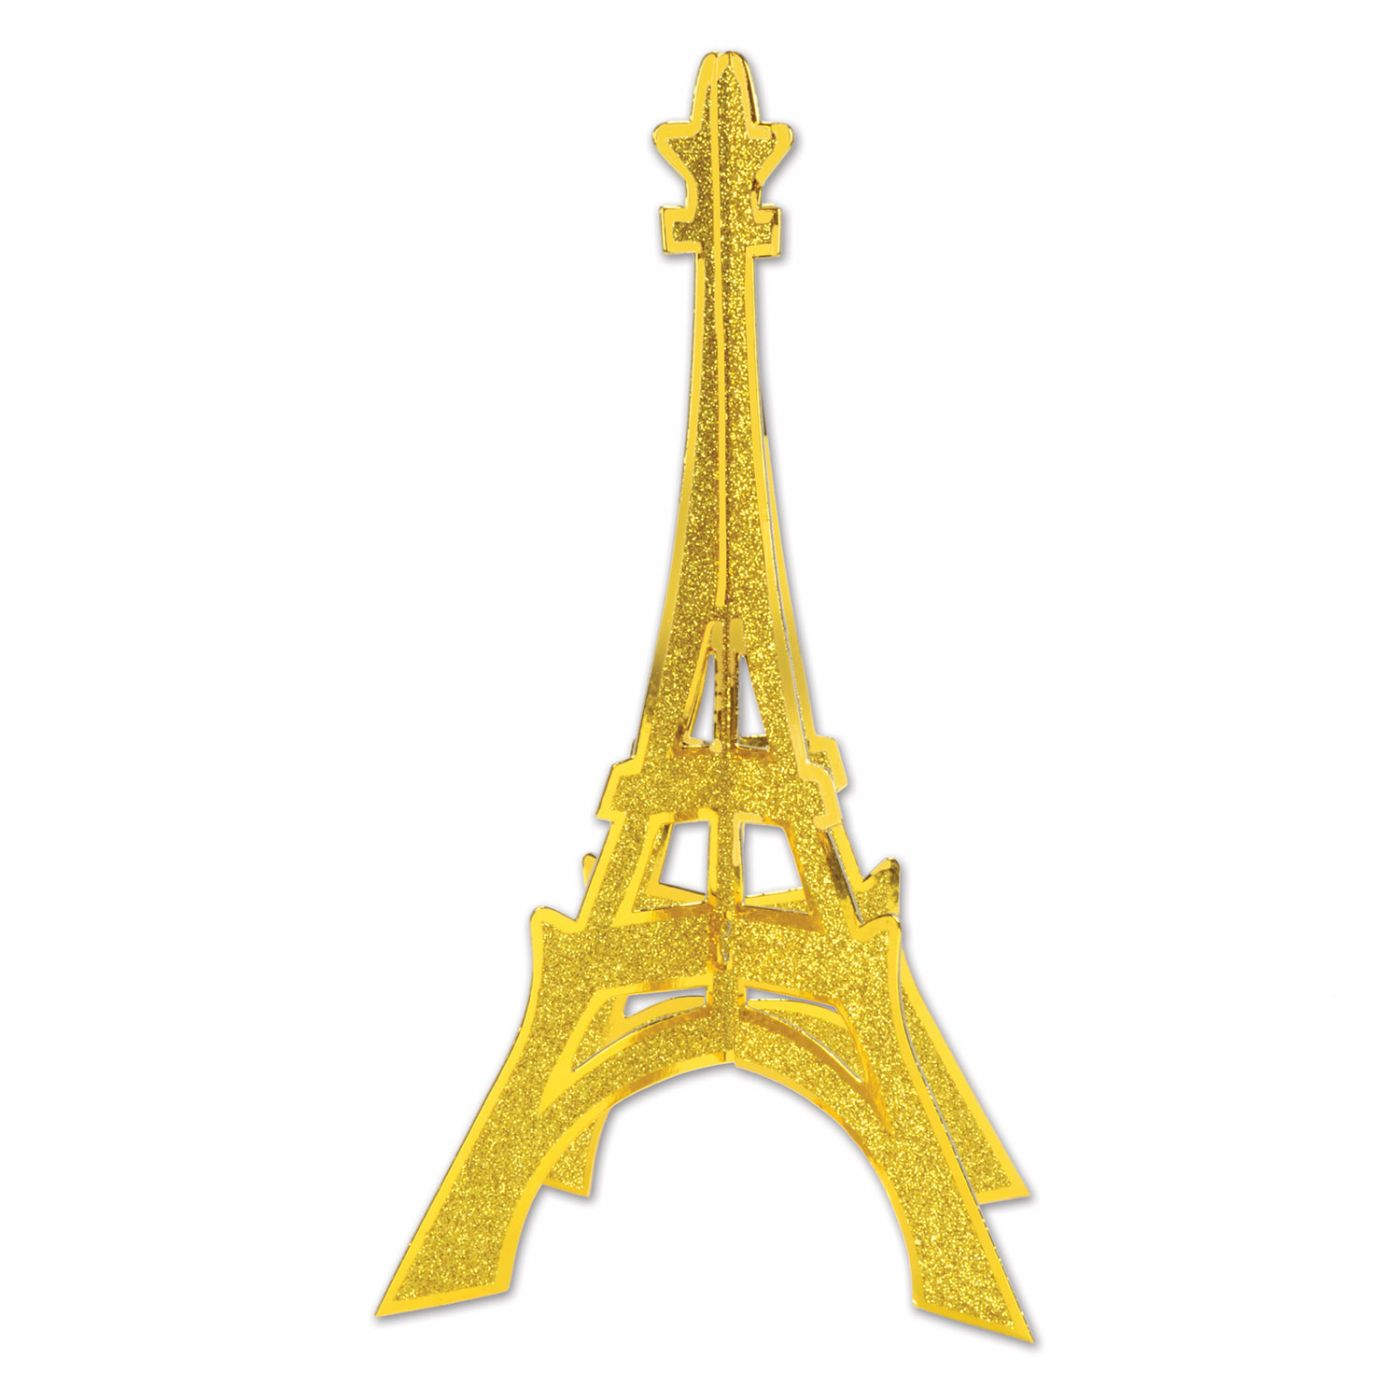 3-D Glittered Eiffel Tower Centerpiece image